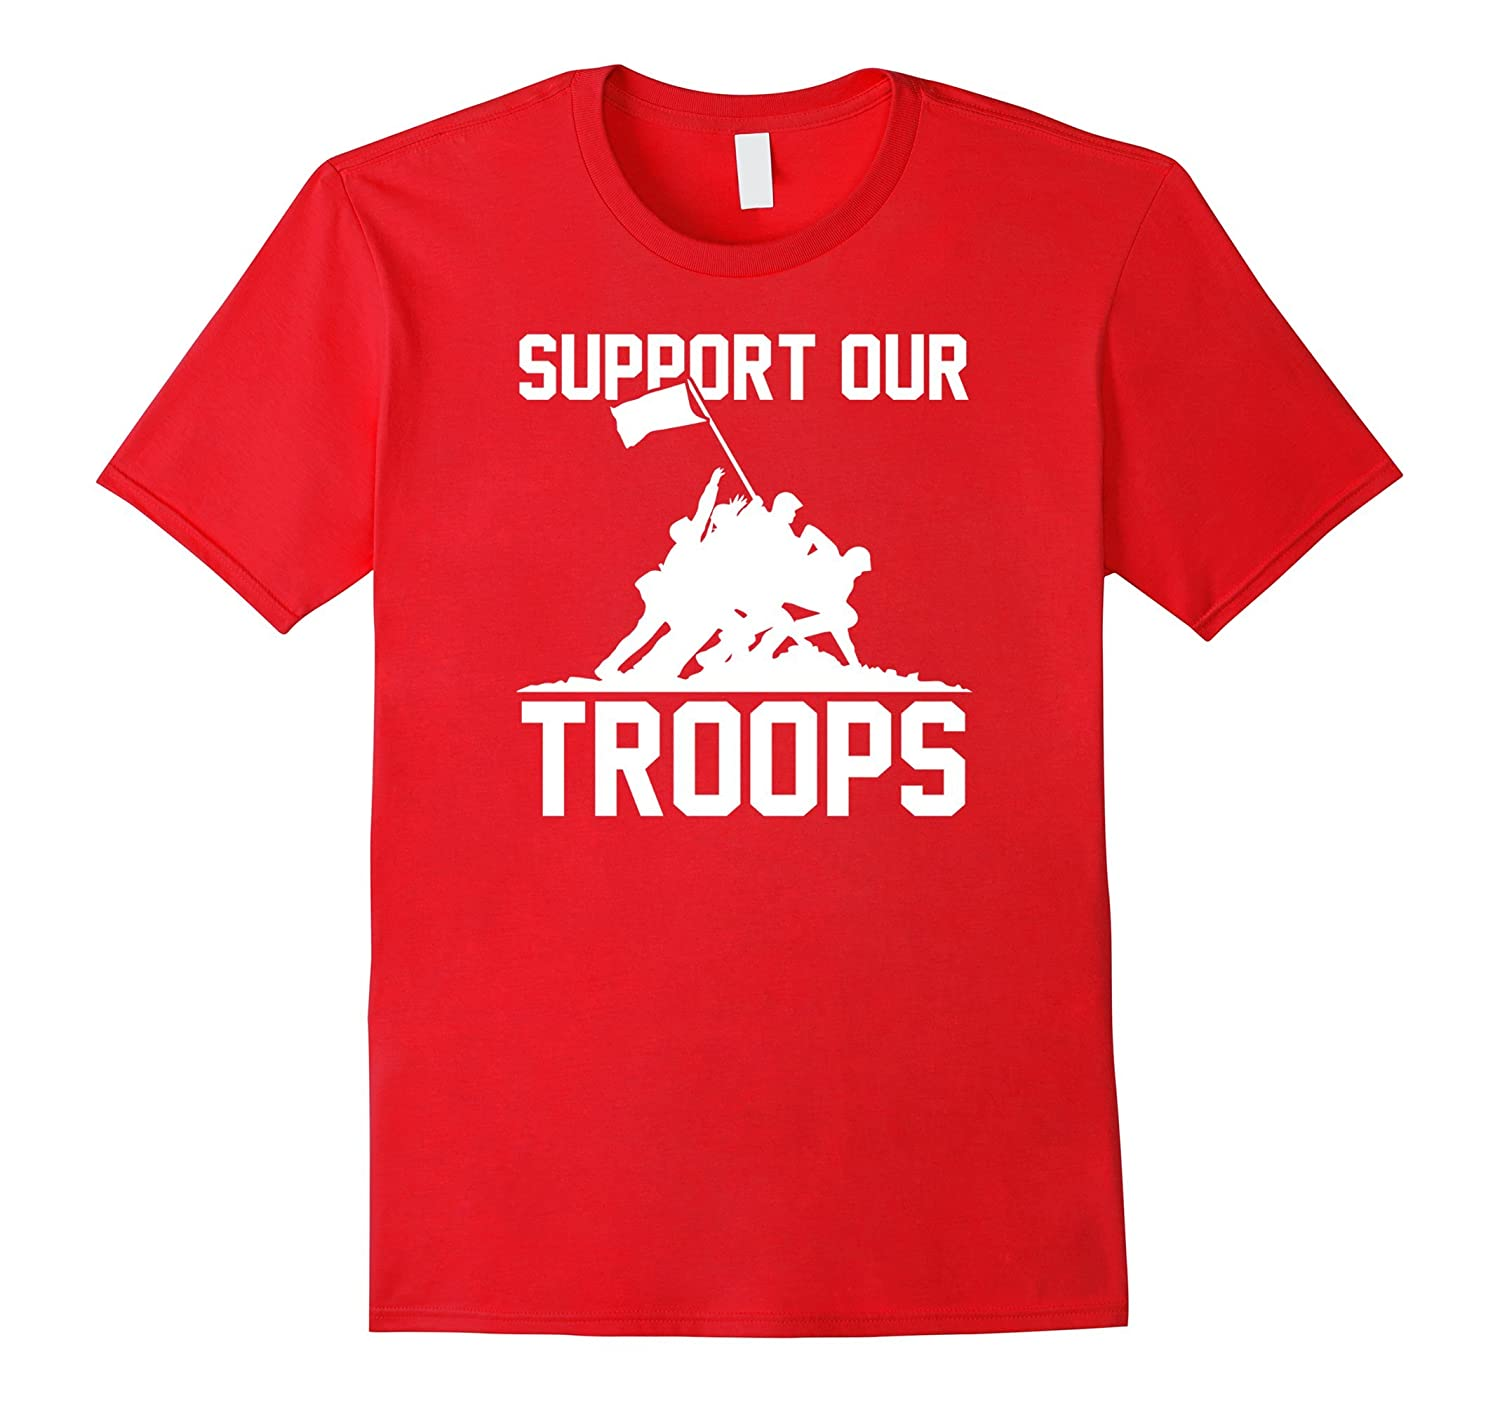 Support Our Troops Shirt Red Shirt Friday T-Shirt-BN